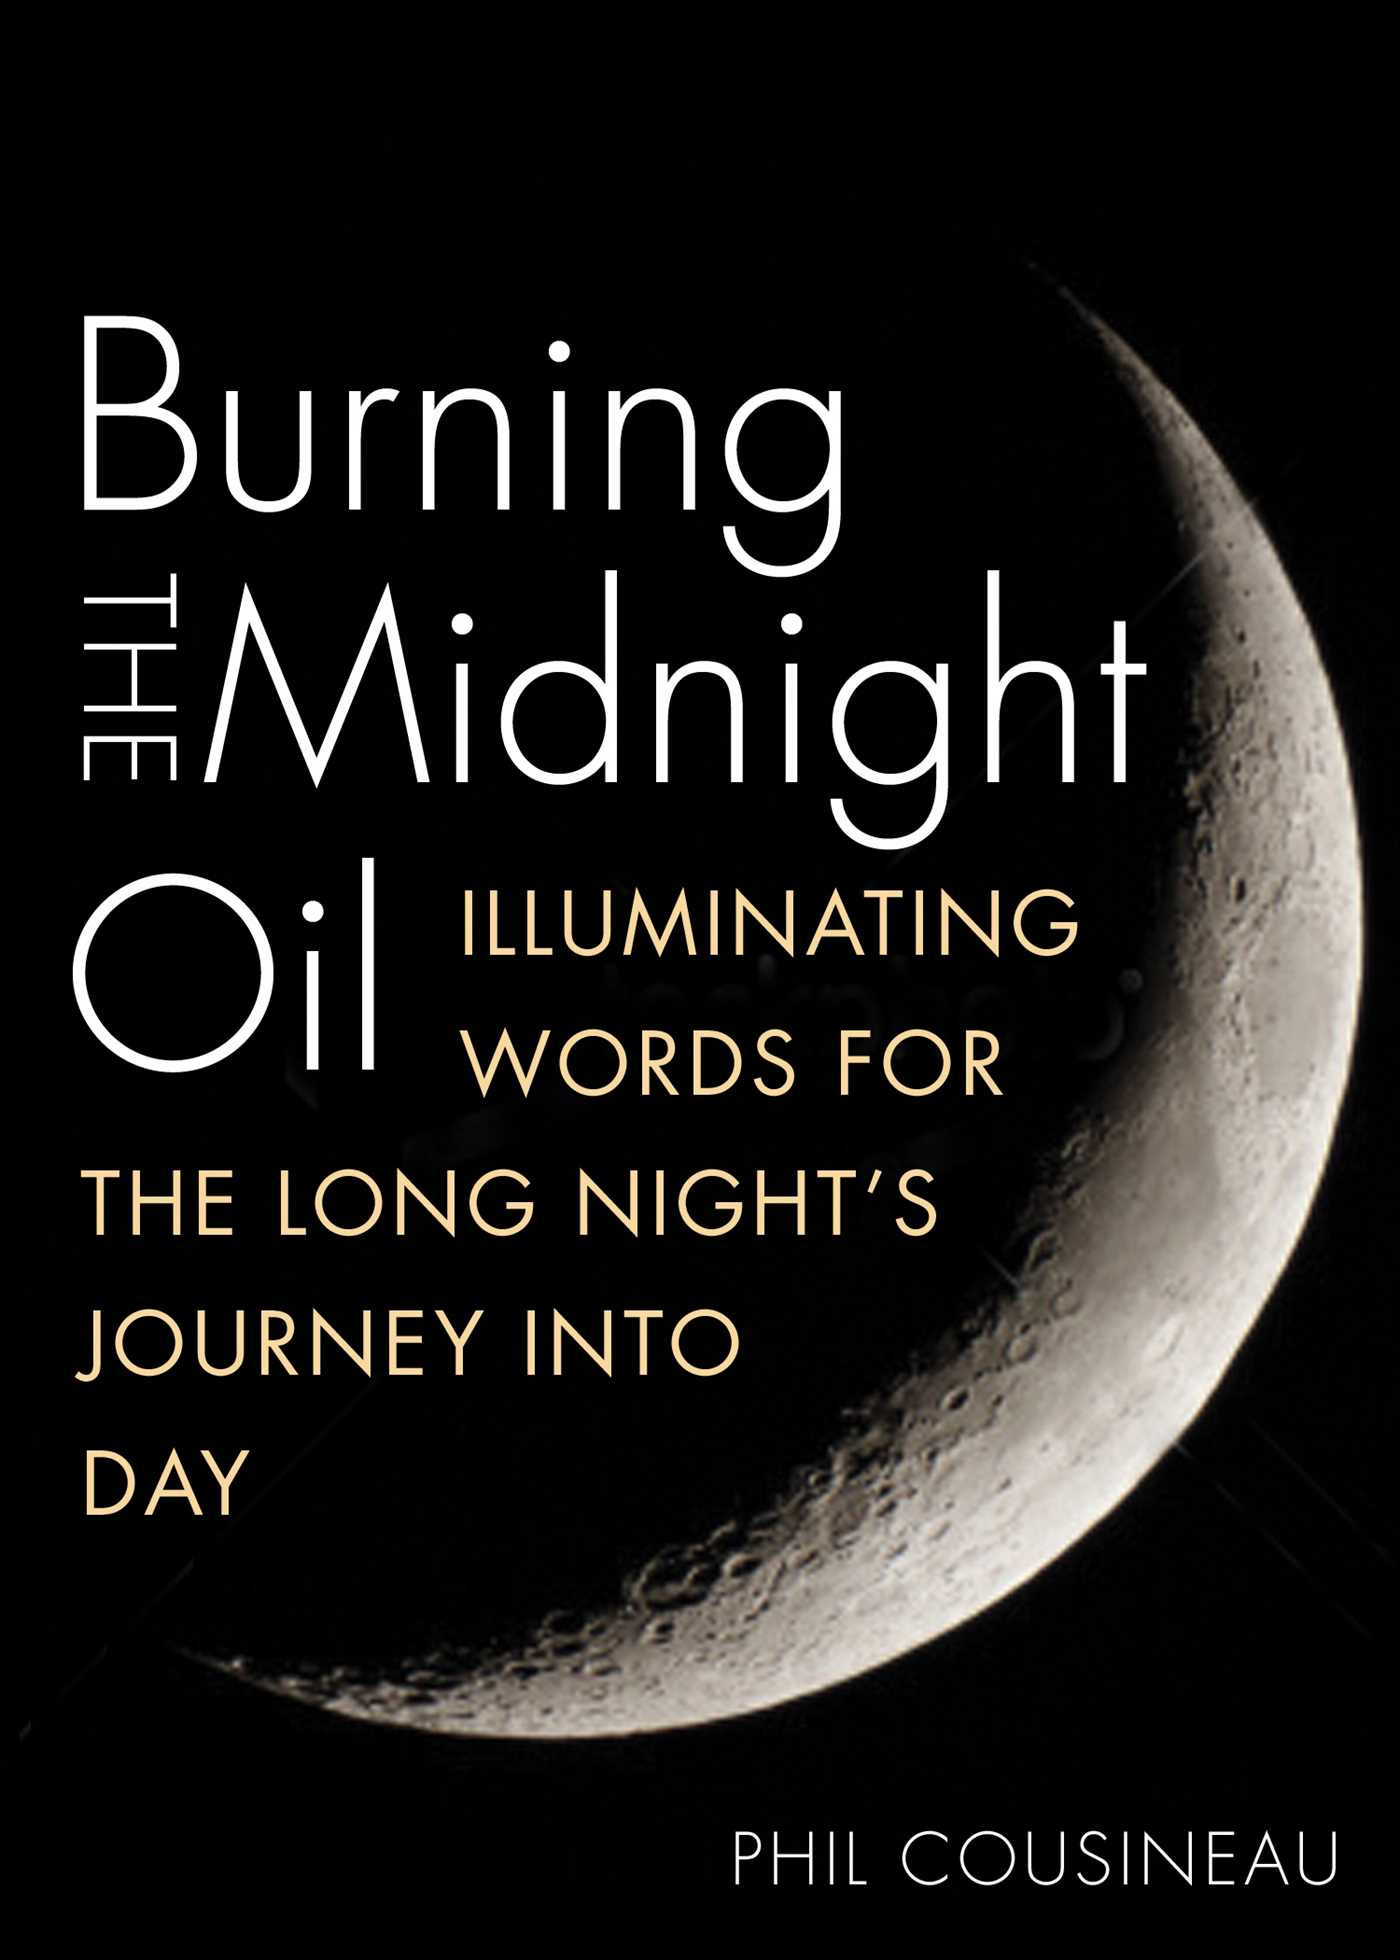 Burning the midnight oil 9781936740772 hr